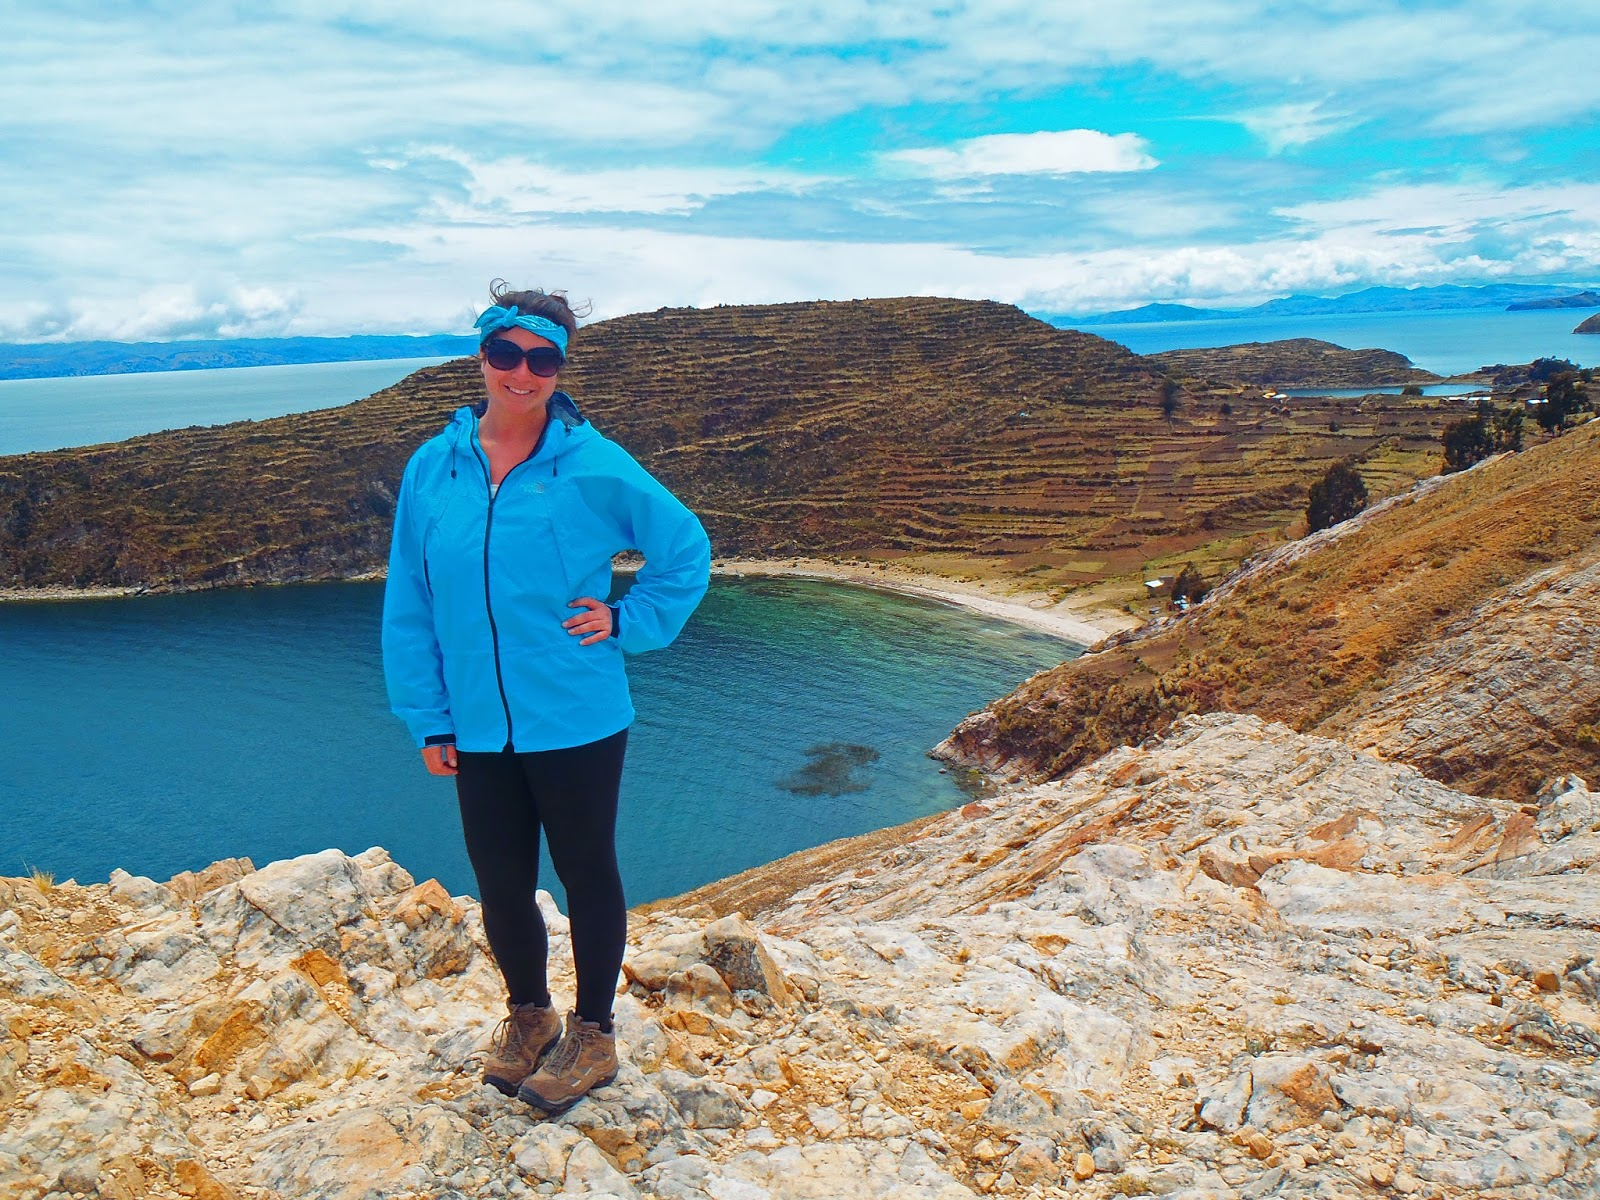 Girl hiking on Isla Del Sol Lake Titicaca